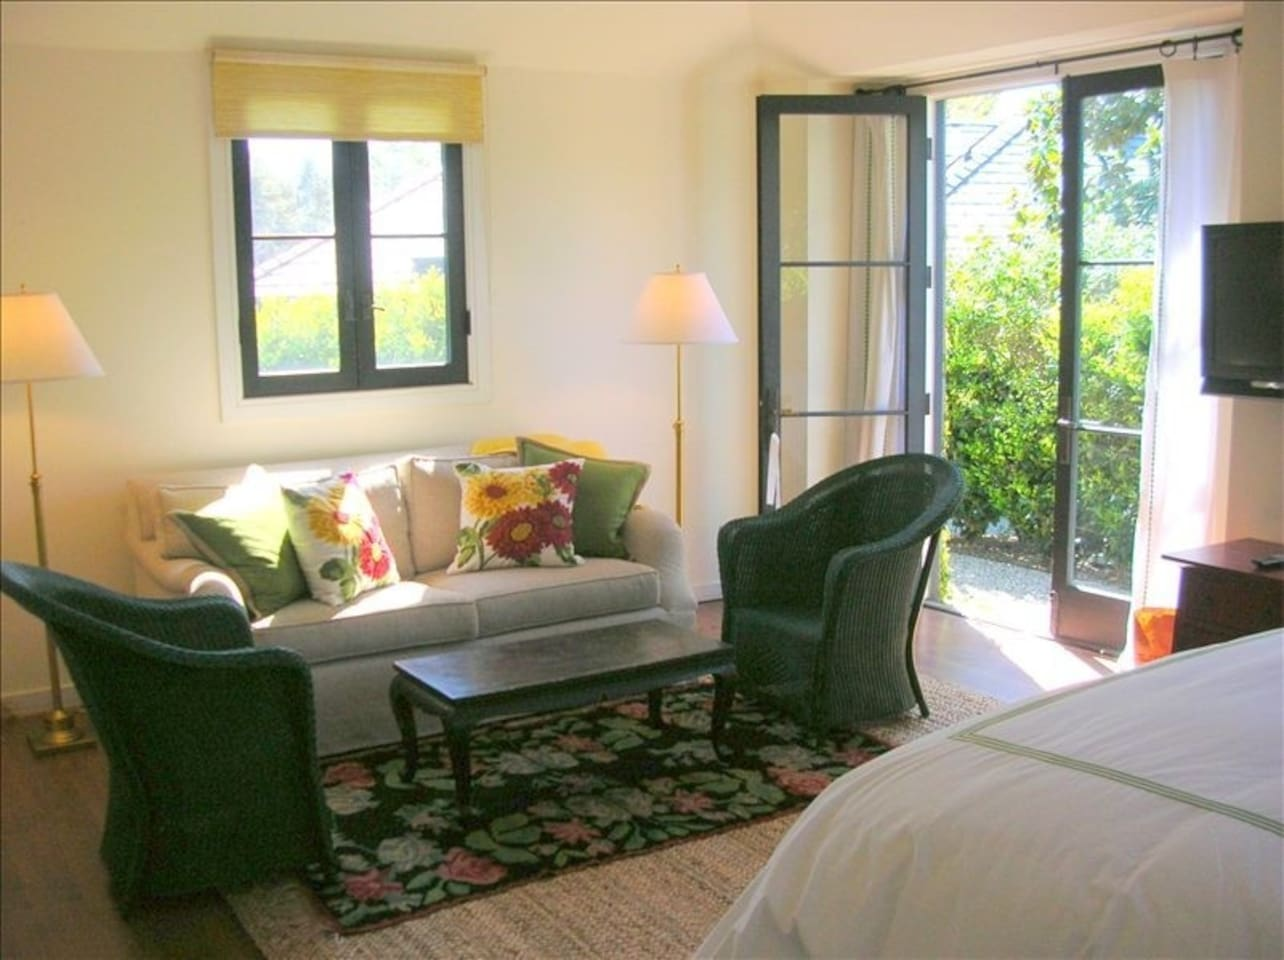 Interior of Guest House. Spacious and airy, perfect for 1 or 2 people.